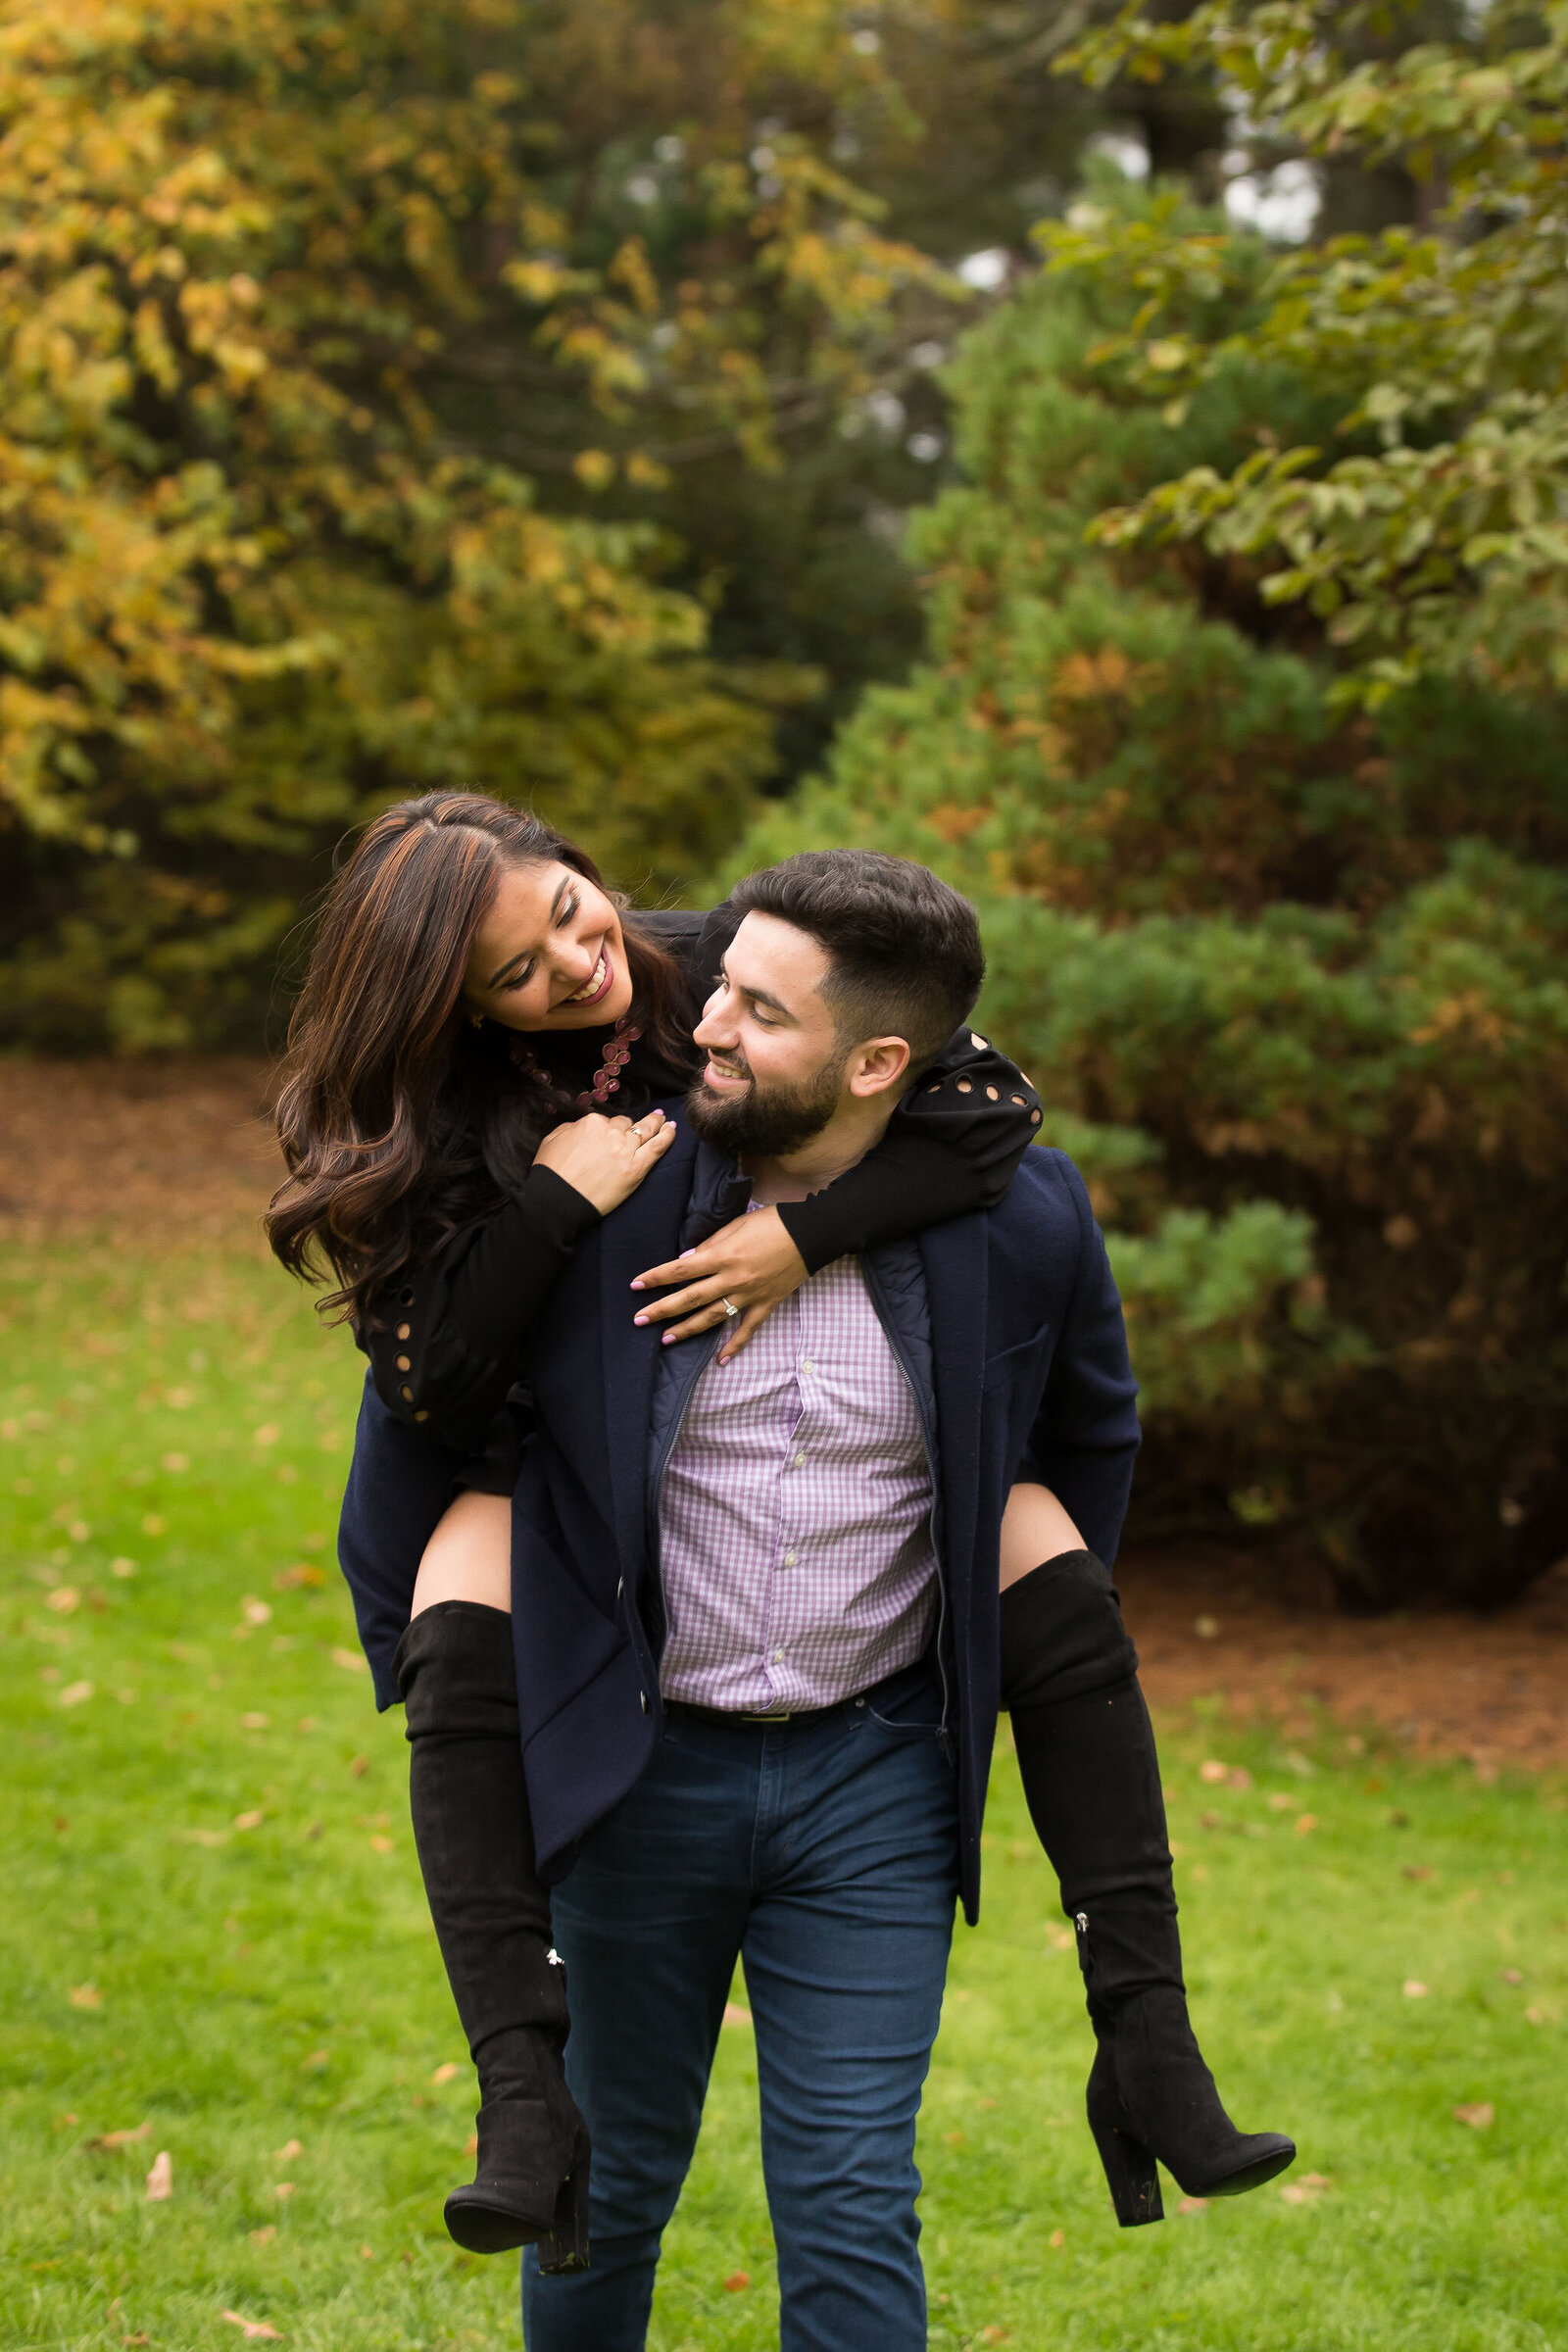 SarahAlec-Engagement-WickhamPark-98